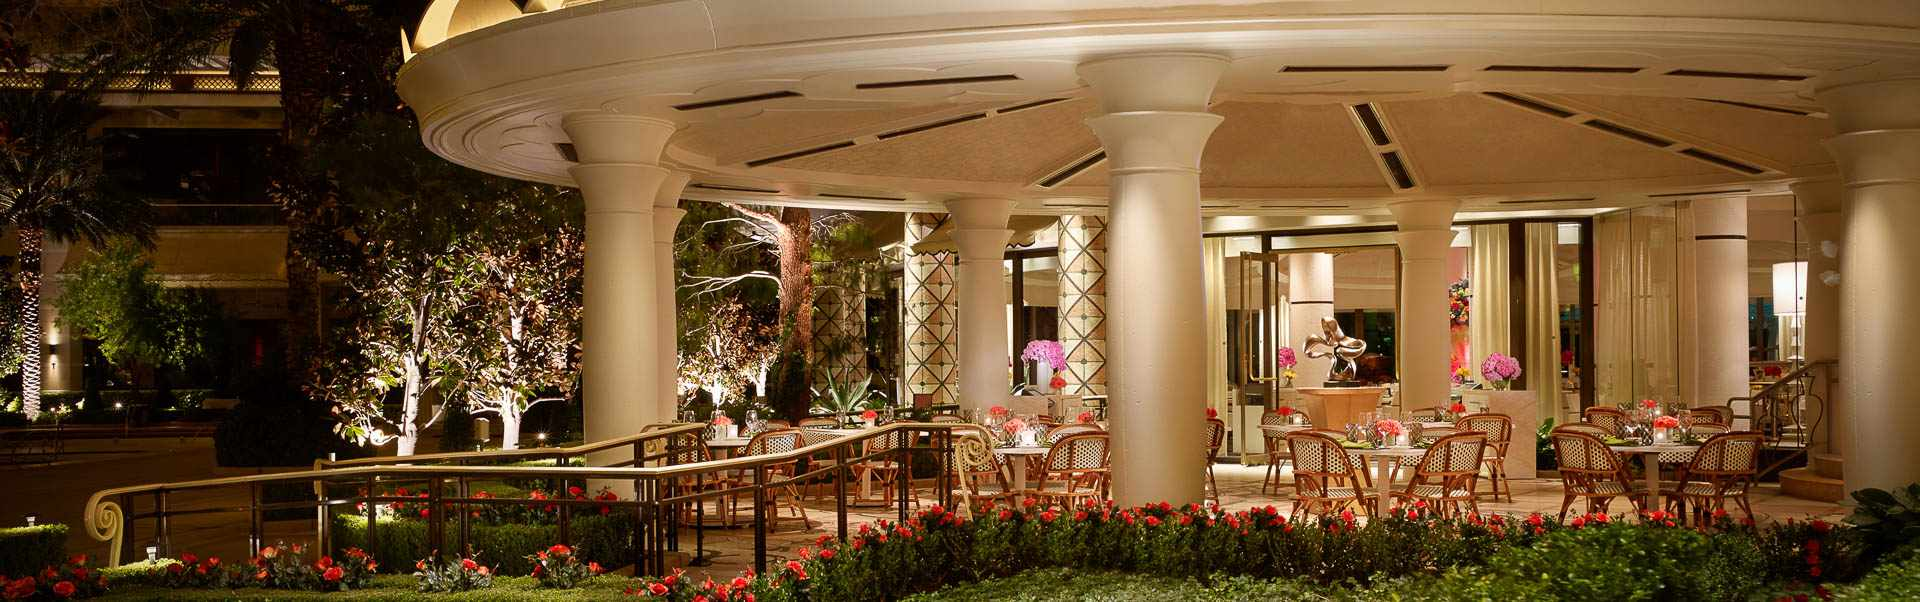 Where To Eat If You Are Staying At Wynn Las Vegas